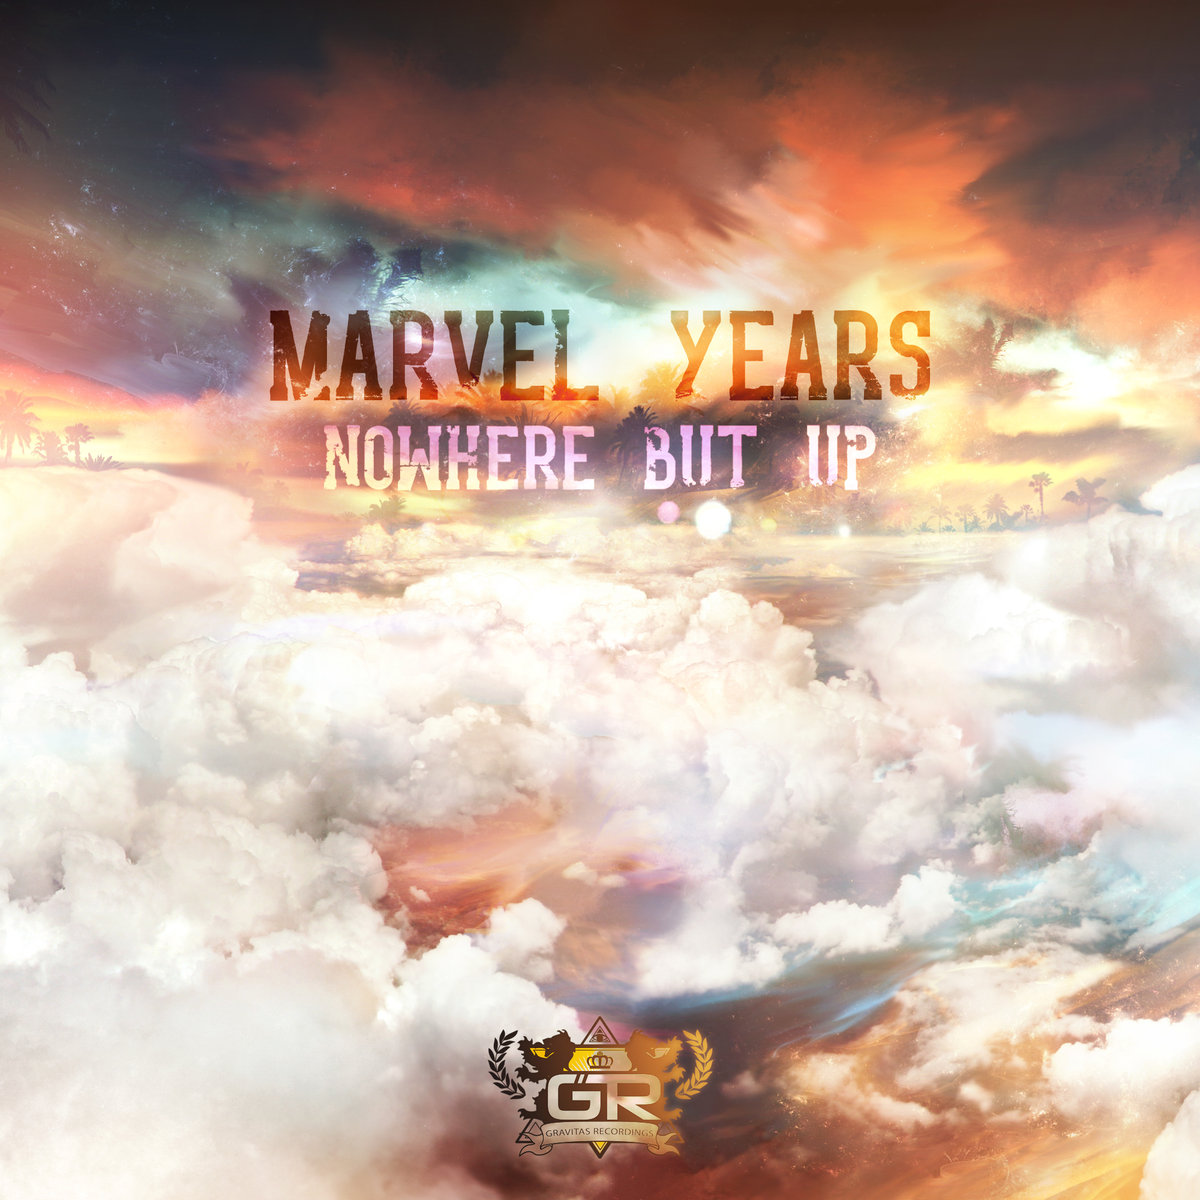 Marvel Years - Only if It's Right @ 'Nowhere But Up' album (hip hop, electro)